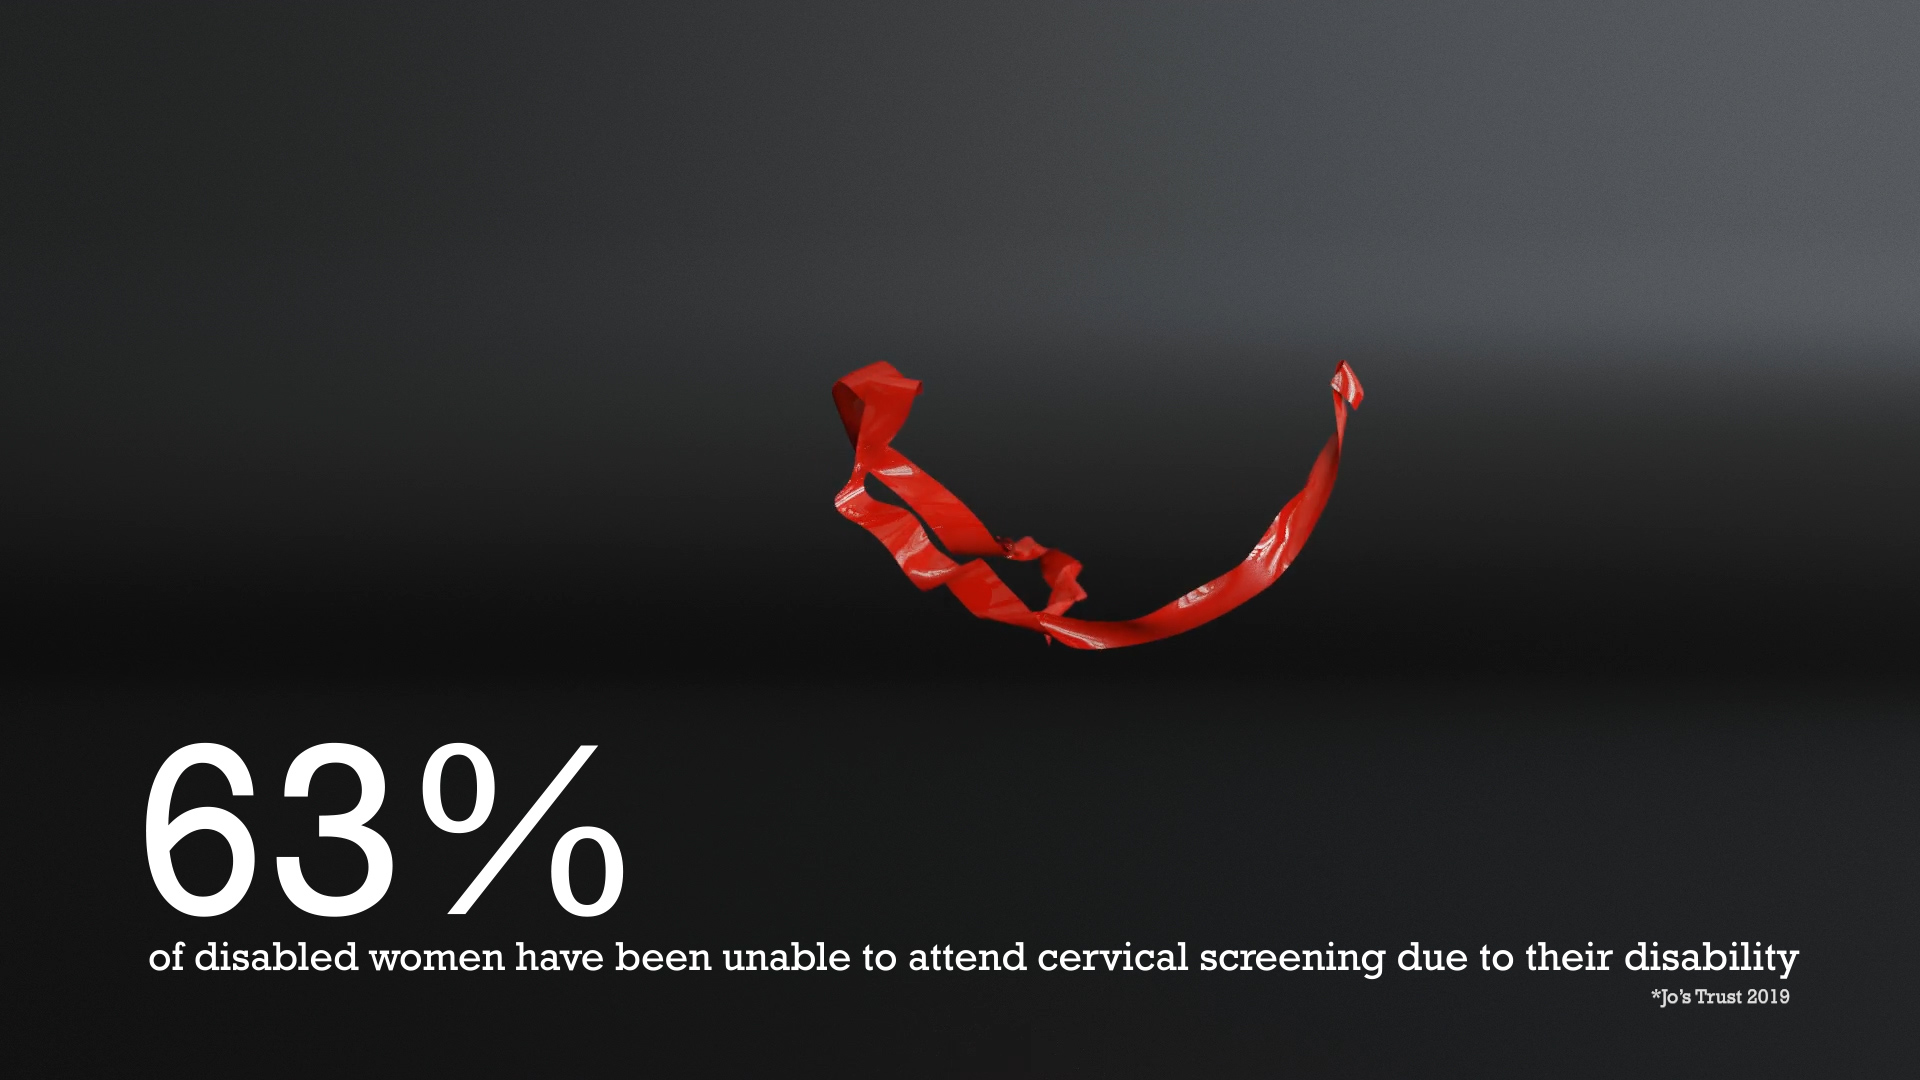 63% of disabled women have been unable to attend cevical screening due to their disability. *Jo's trust 2019